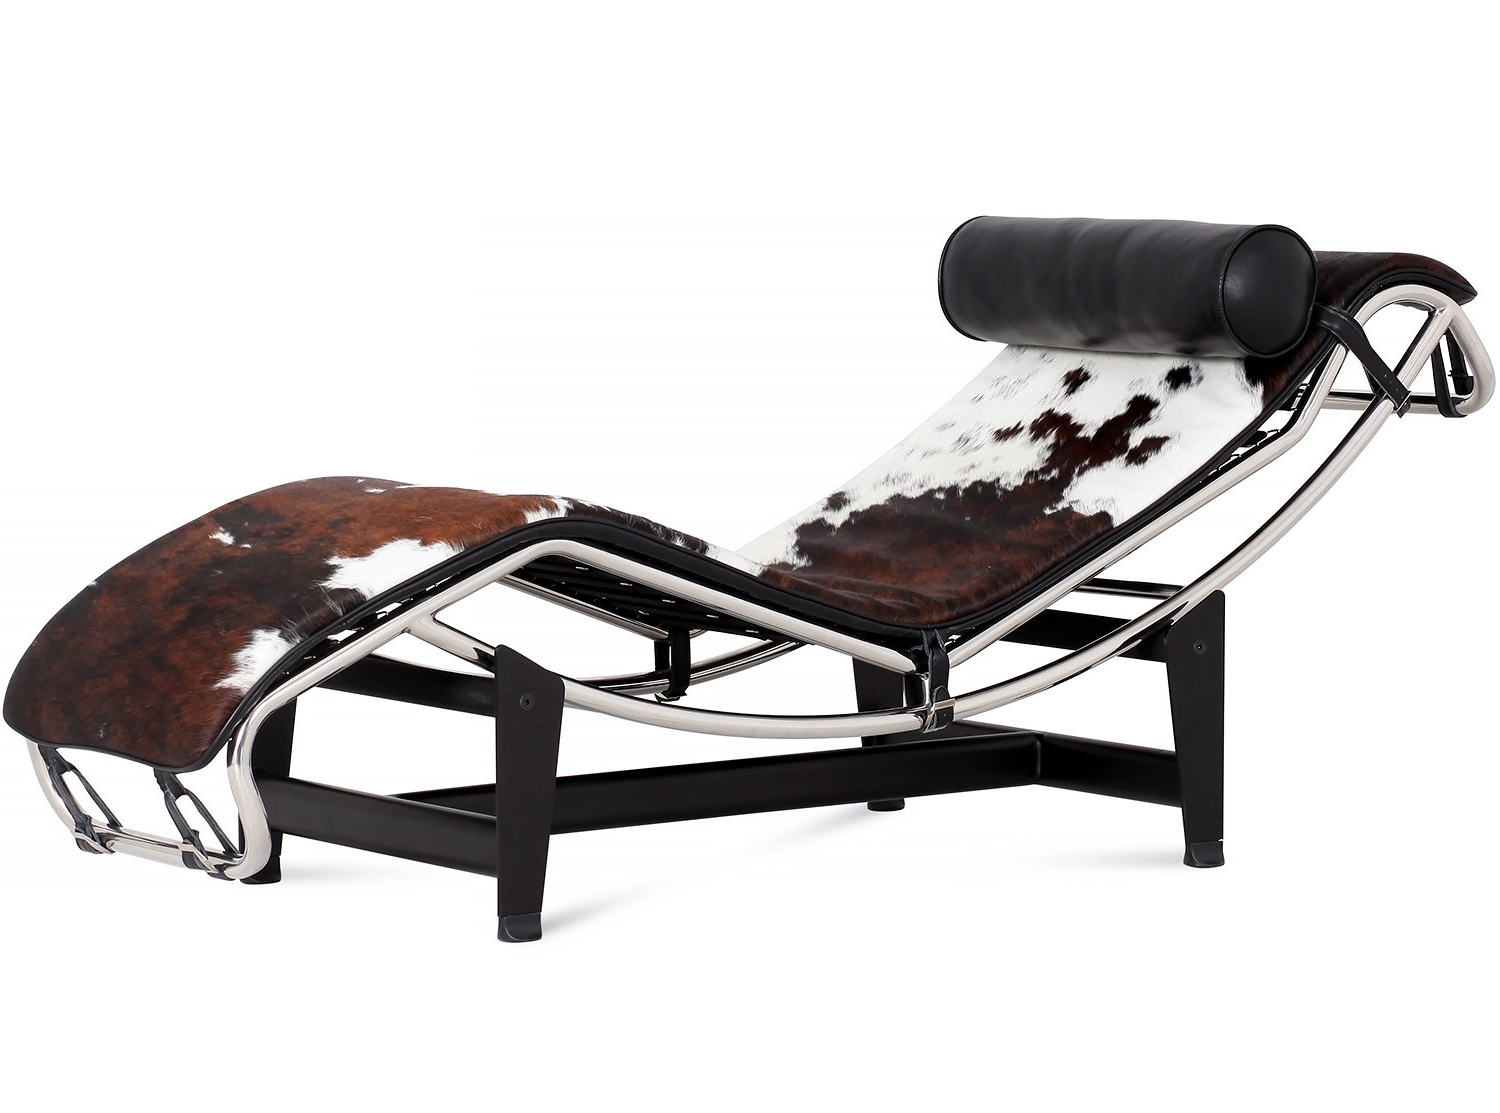 Le Corbusier Lc4 Chaise Longue Cowhide (Platinum Replica) Within Most Up To Date Corbusier Chaises (View 9 of 15)